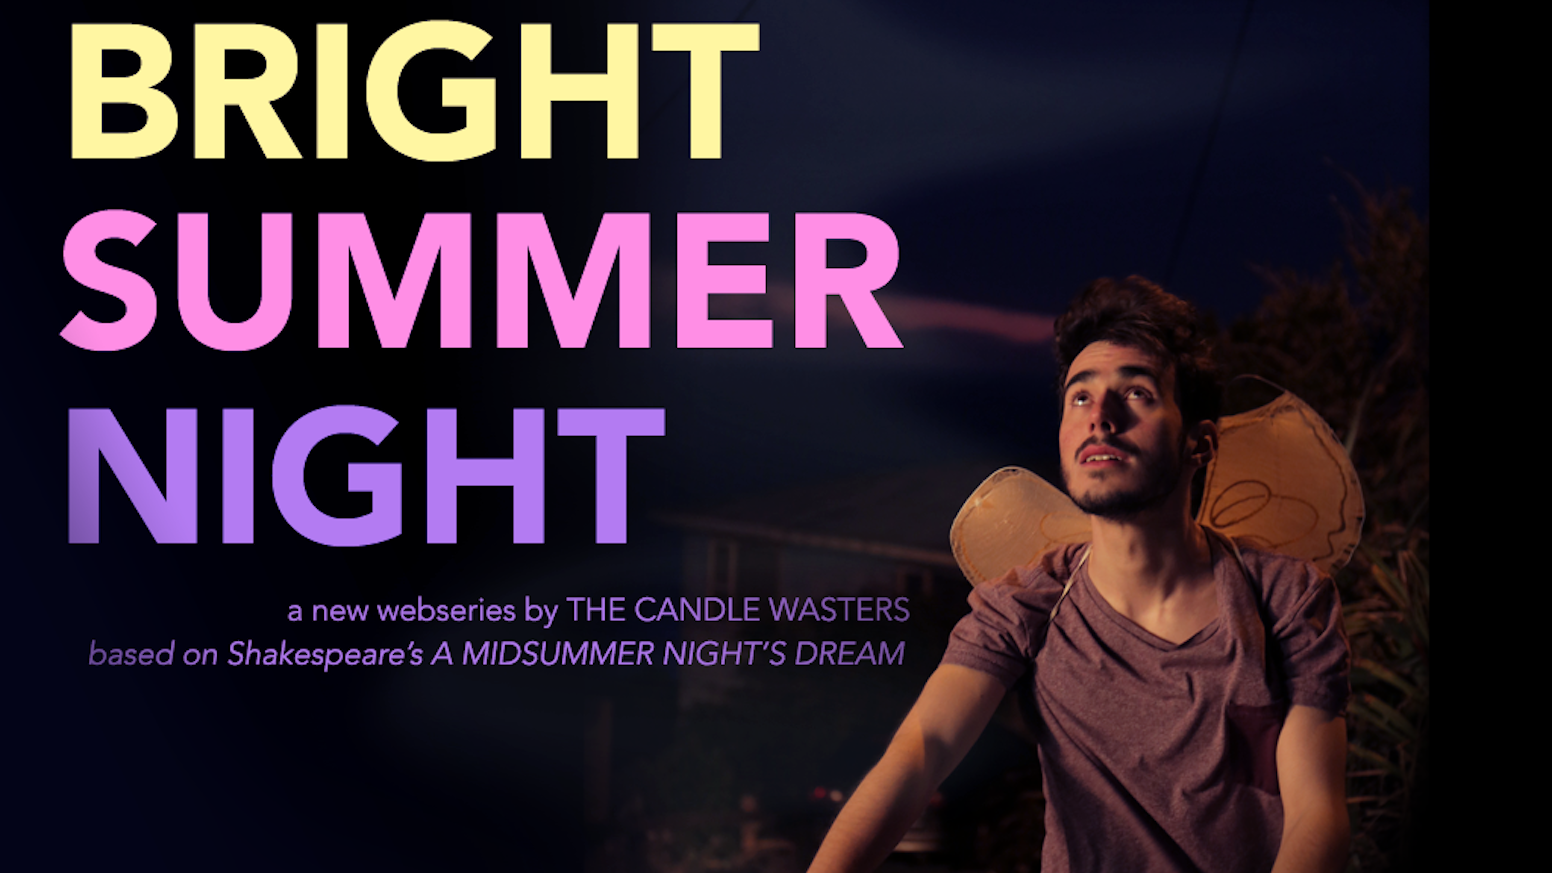 Shakespearean webseries inspired by 'A Midsummer Night's Dream', from The Candle Wasters (Nothing Much to Do, Lovely Little Losers)